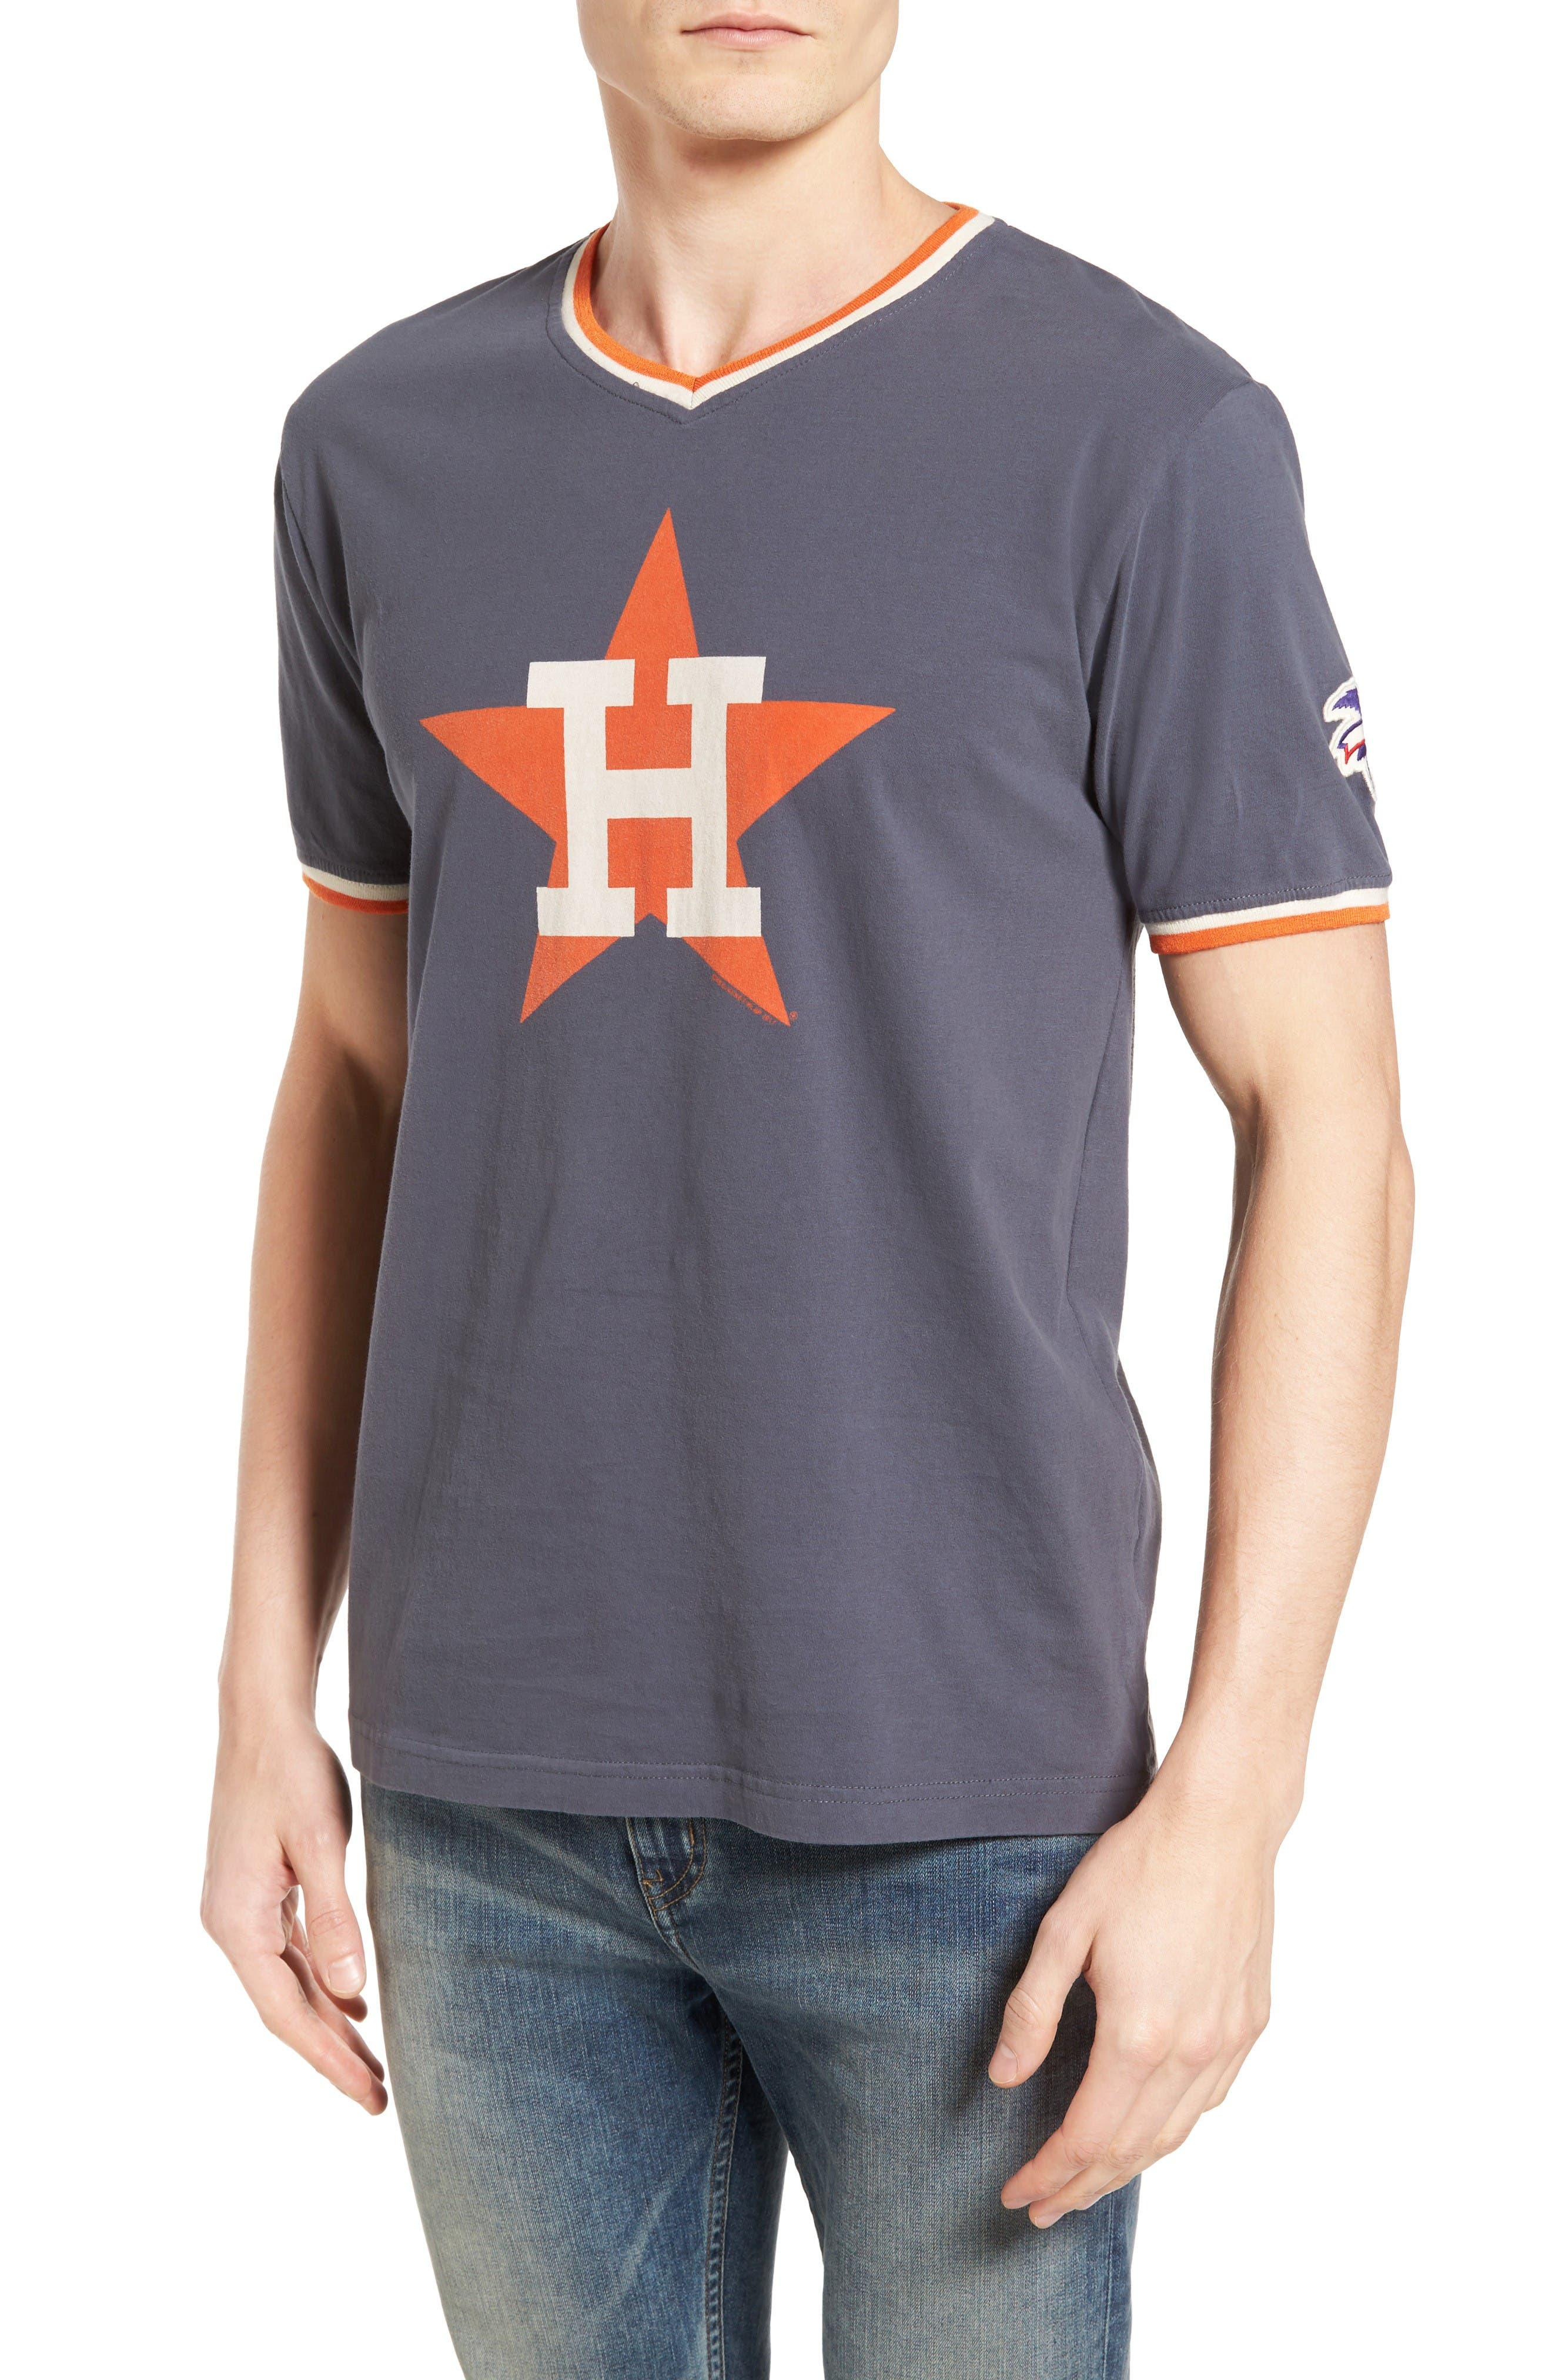 Alternate Image 1 Selected - American Needle Eastwood Houston Astros T-Shirt